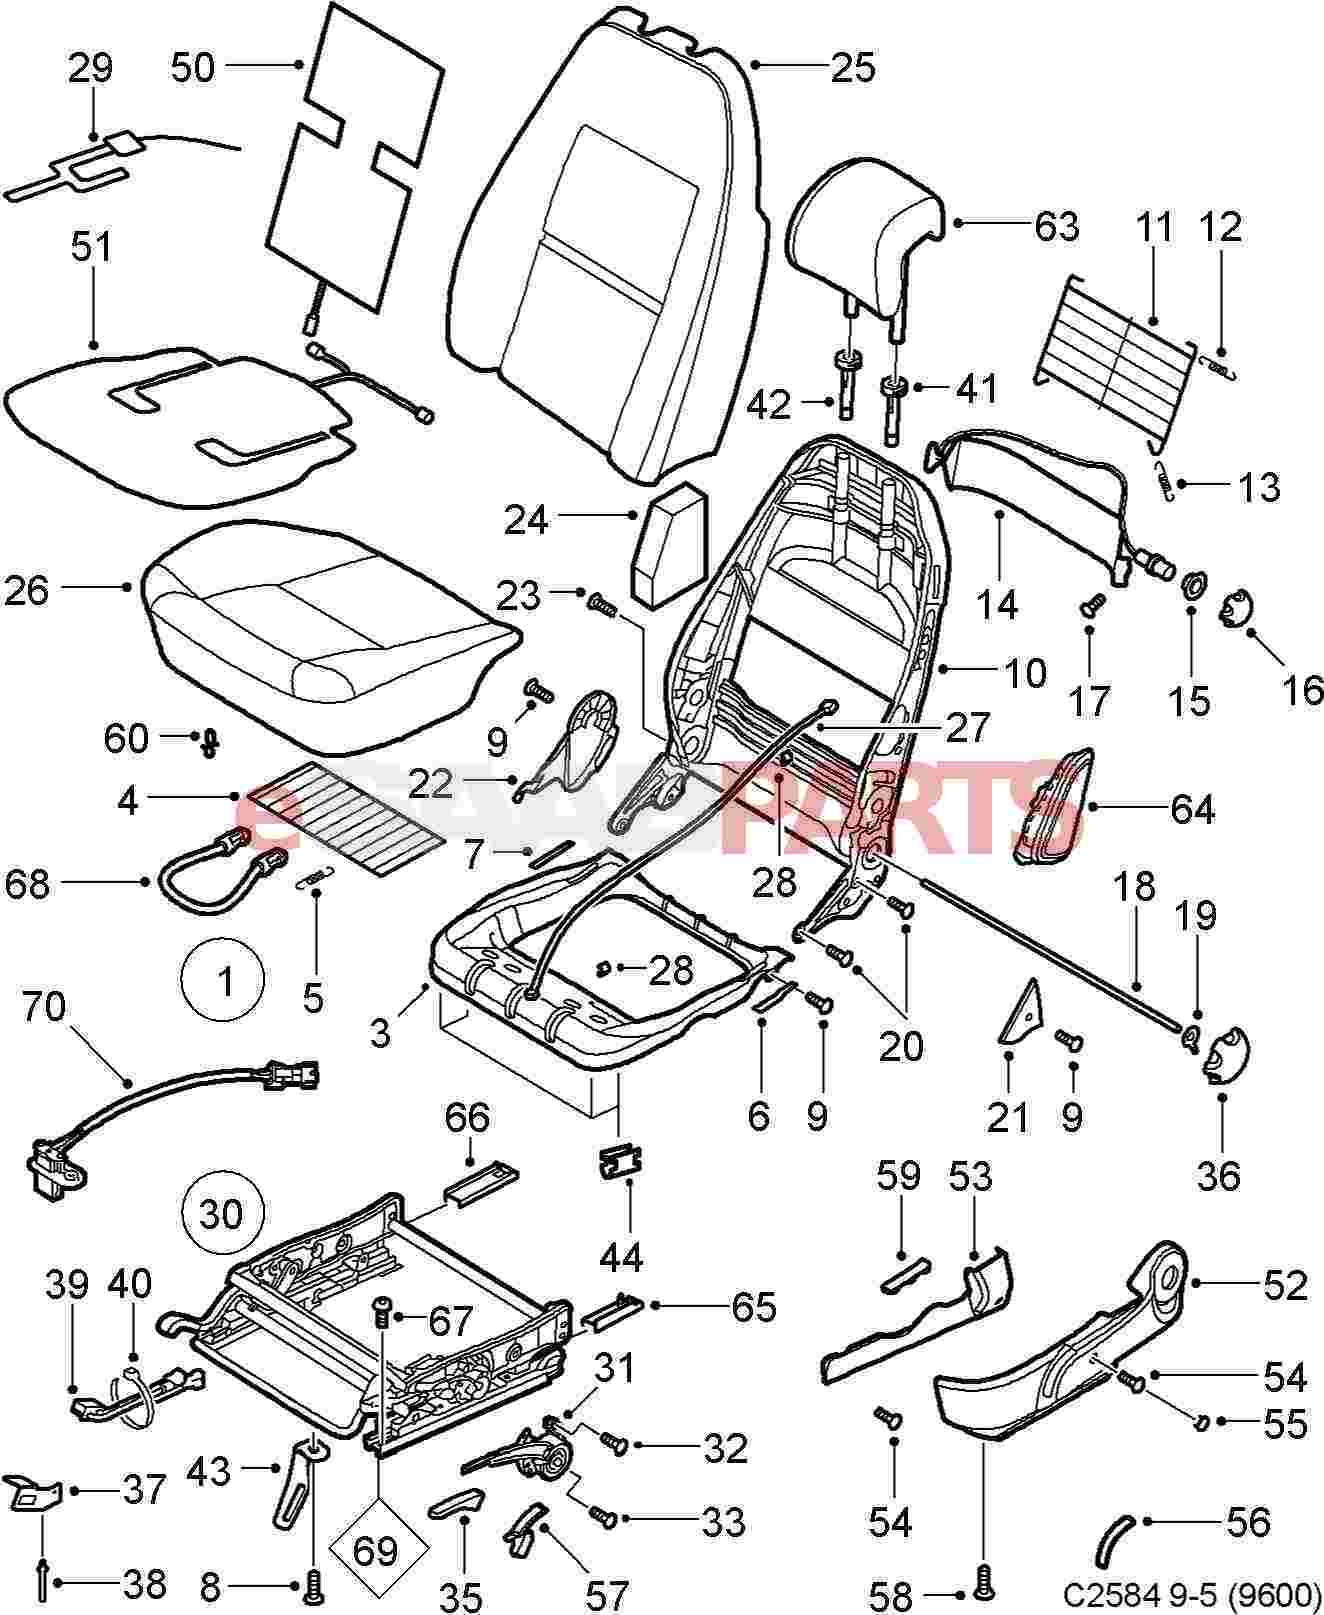 Jackson Wiring Diagram For V - Trusted Wiring Diagram